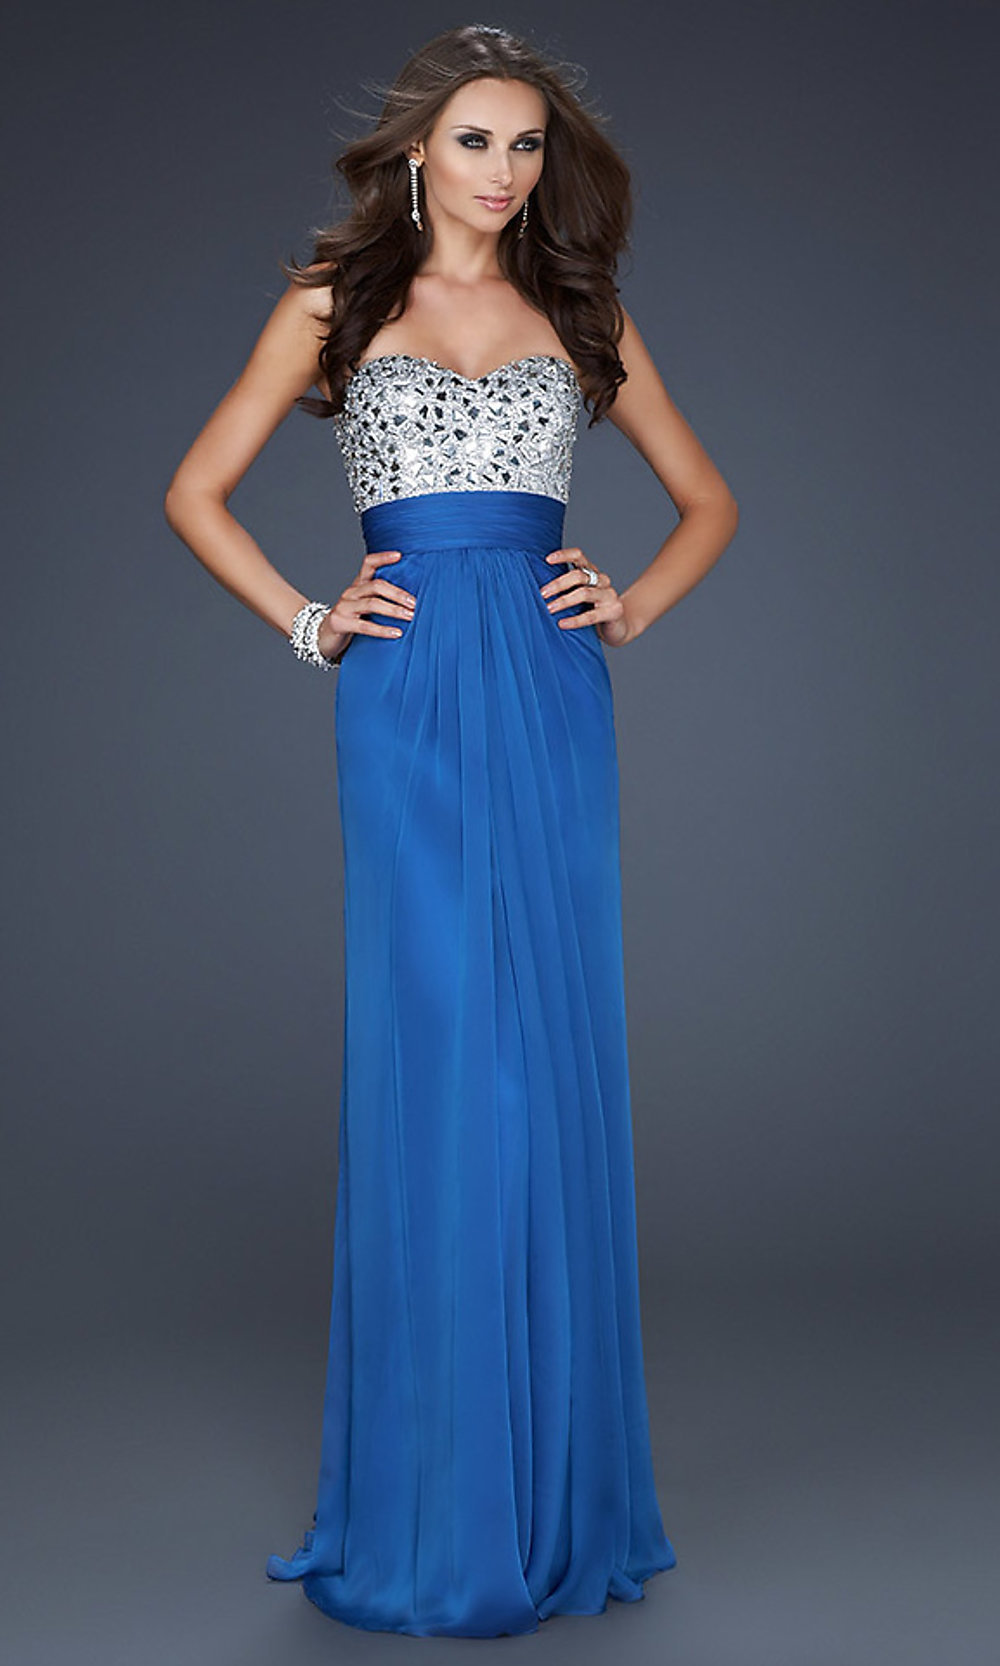 Beaded Strapless Prom Gowns La Femme Strapless Gowns